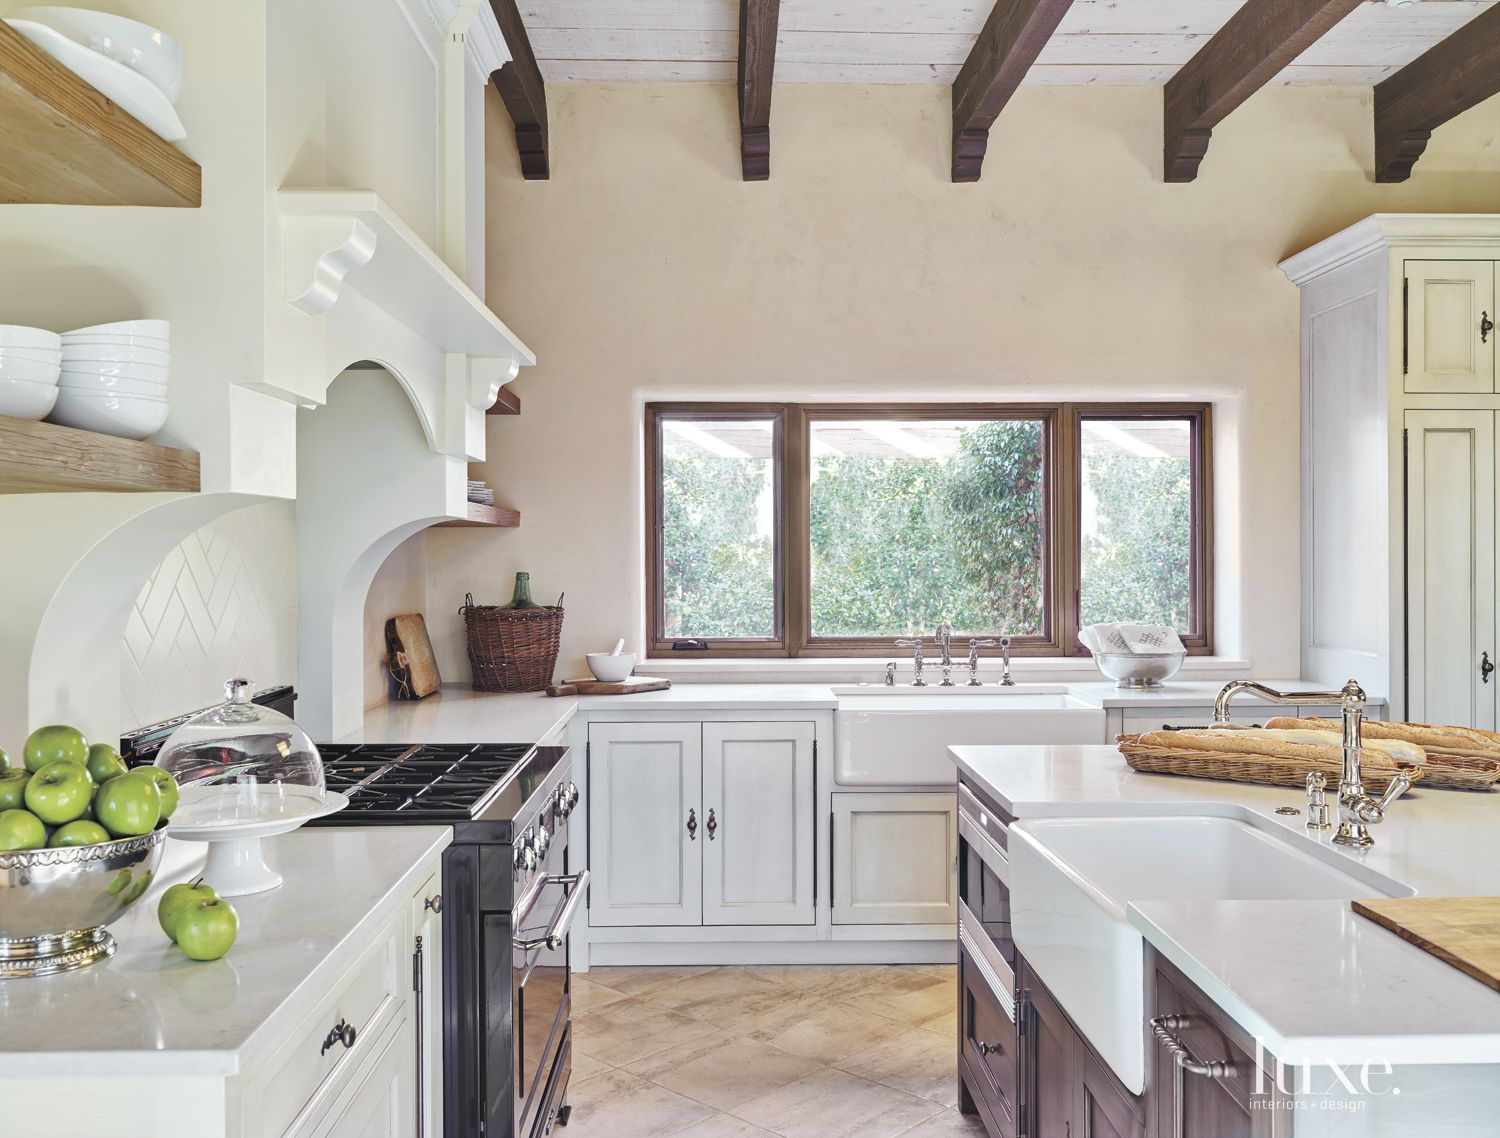 Mediterranean Cream Kitchen with Farmhouse Sinks